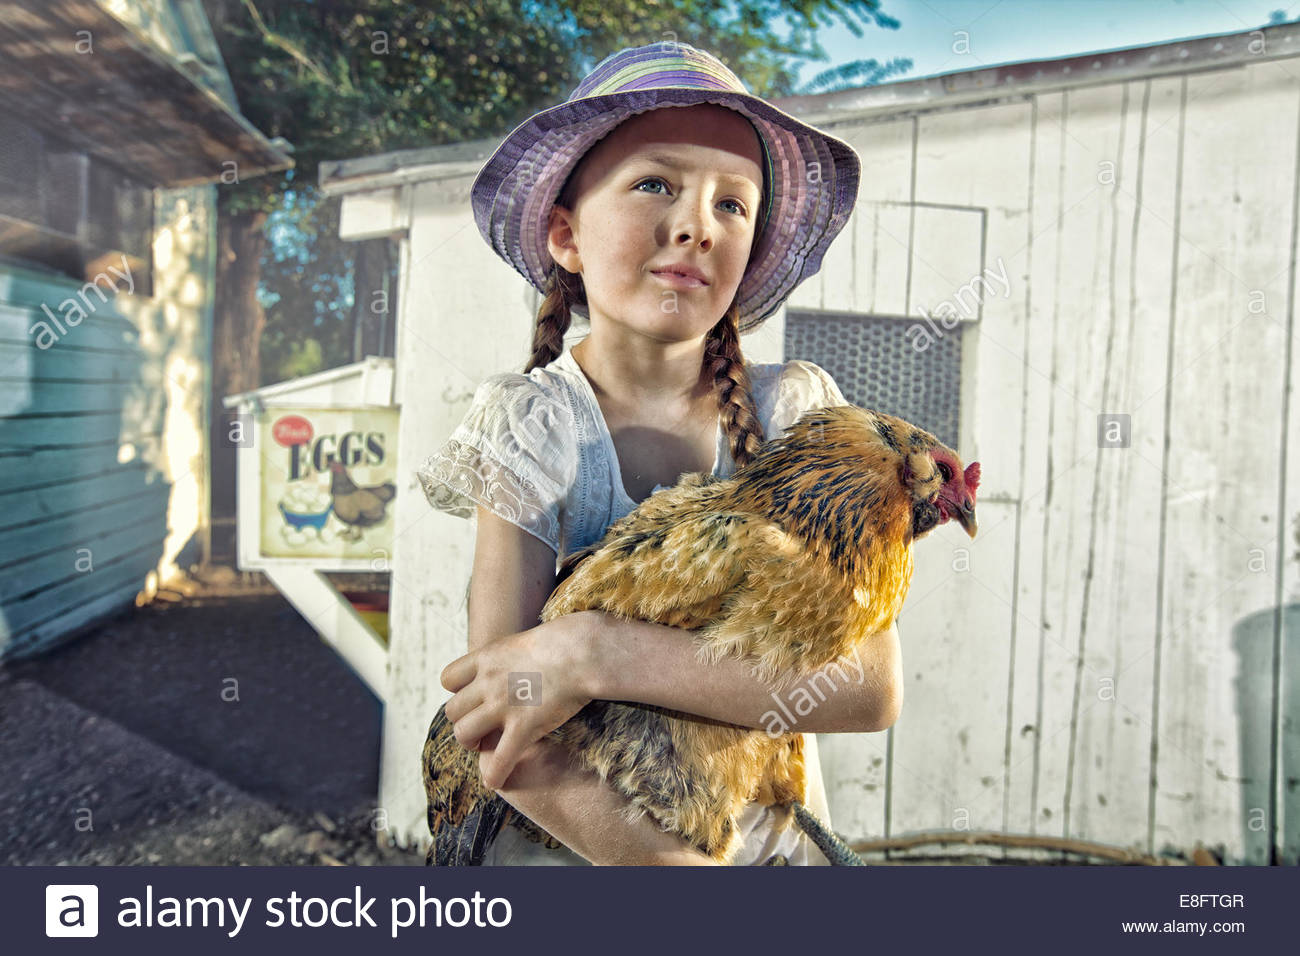 Portrait of a girl on a farm carrying a chicken - Stock Image